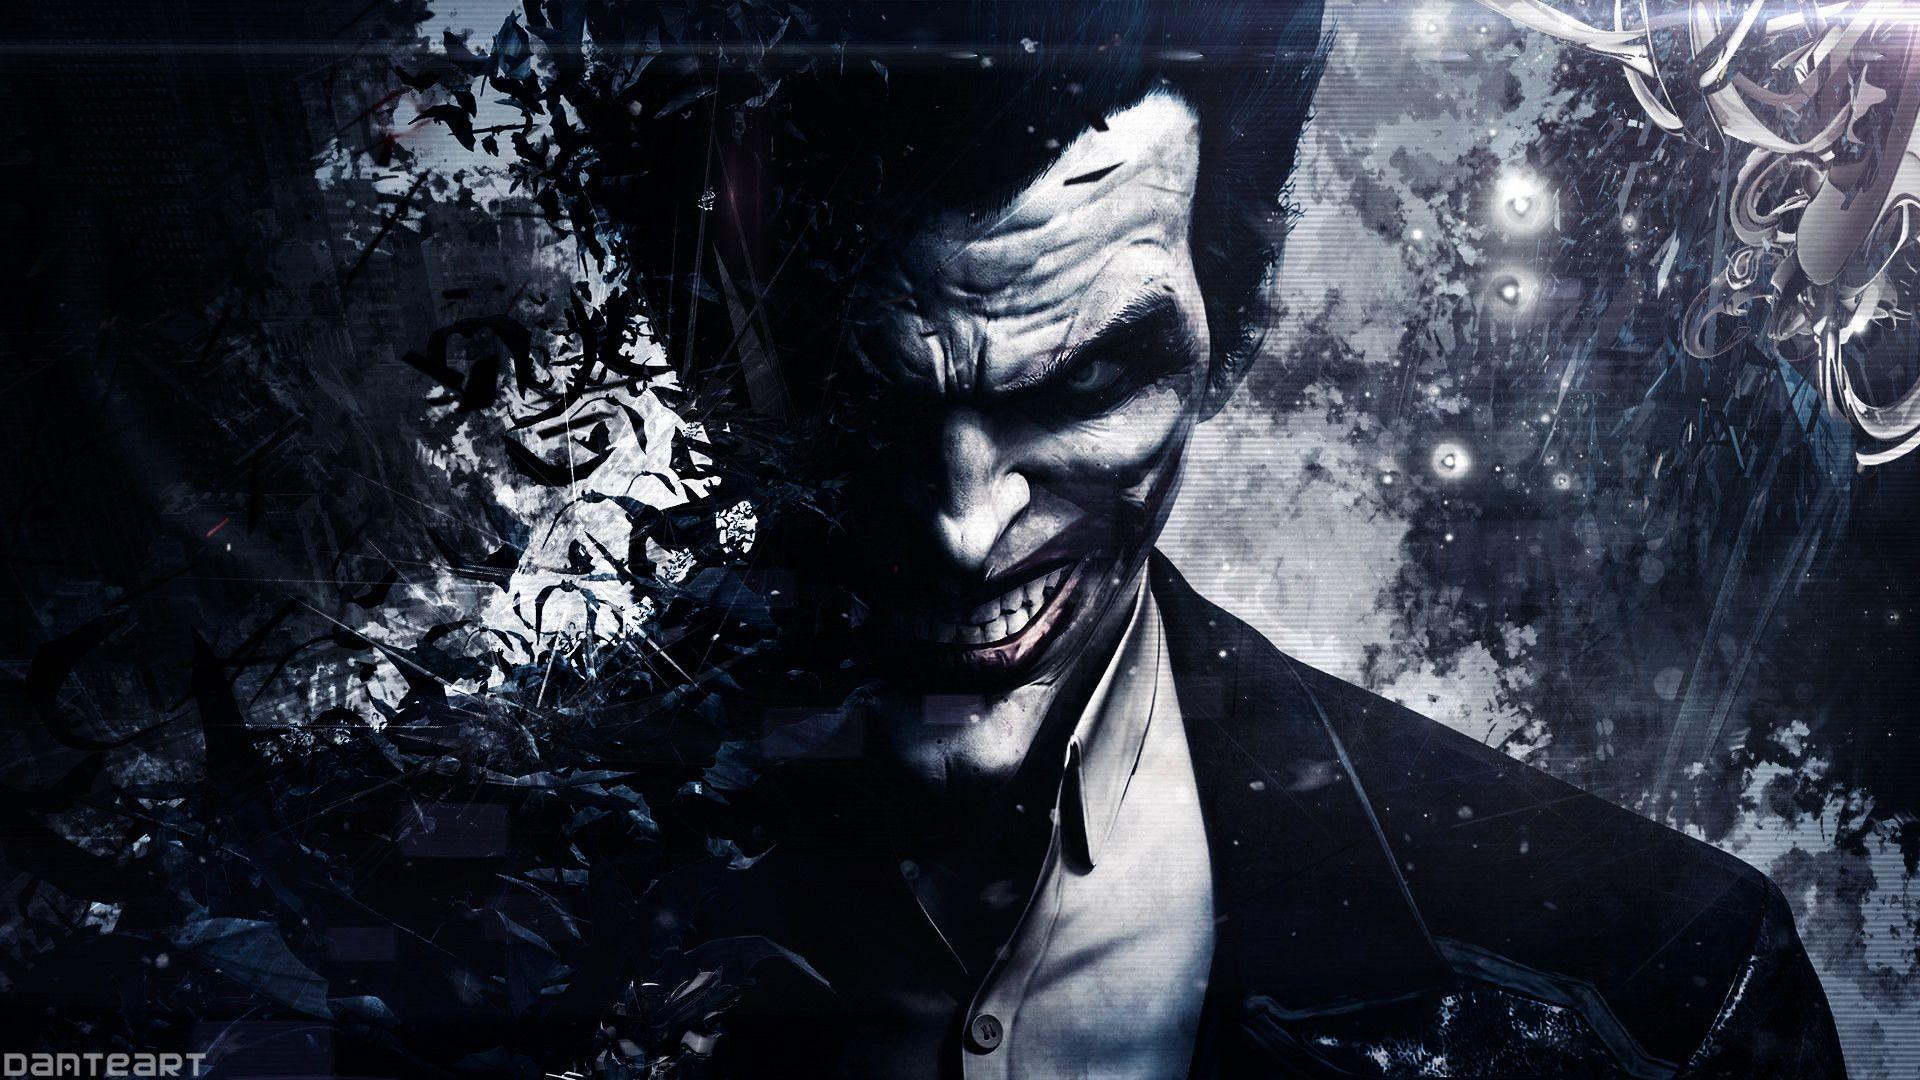 Batman And Joker Wallpapers - Wallpaper Cave